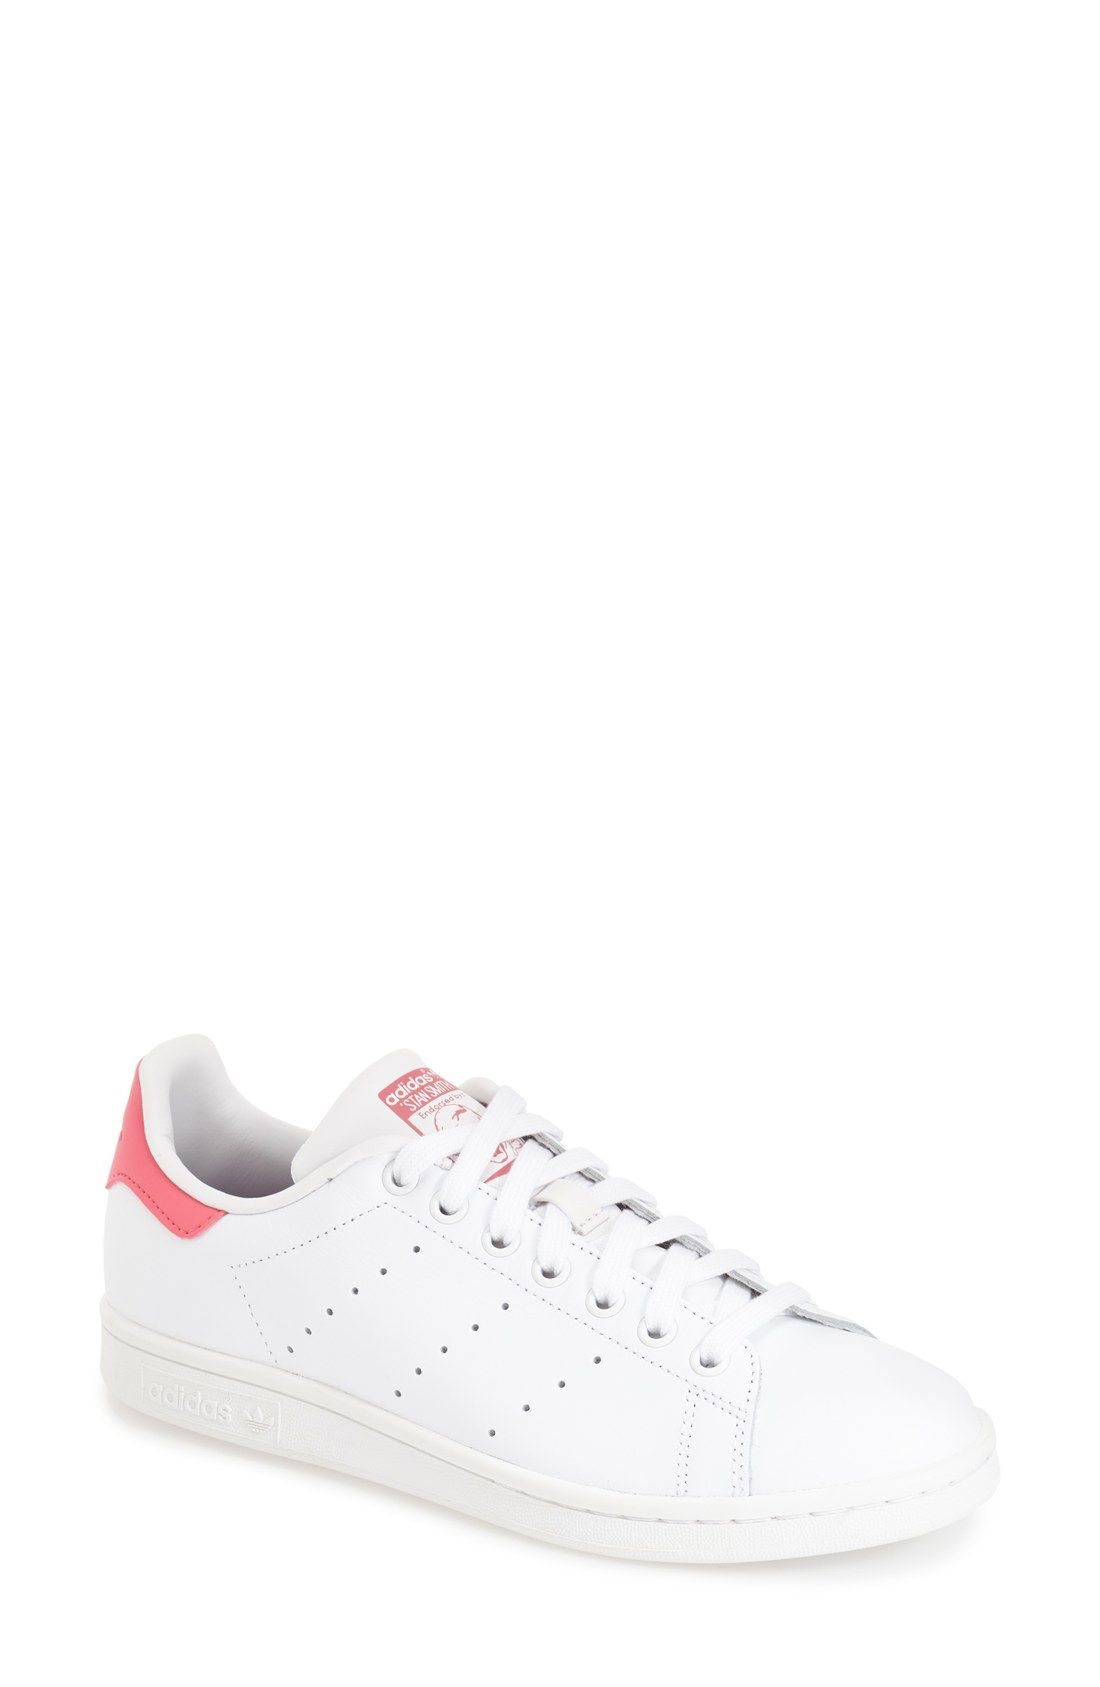 Adding a feminine touch to the classic Adidas Stan Smith sneaker by adding  pink details.